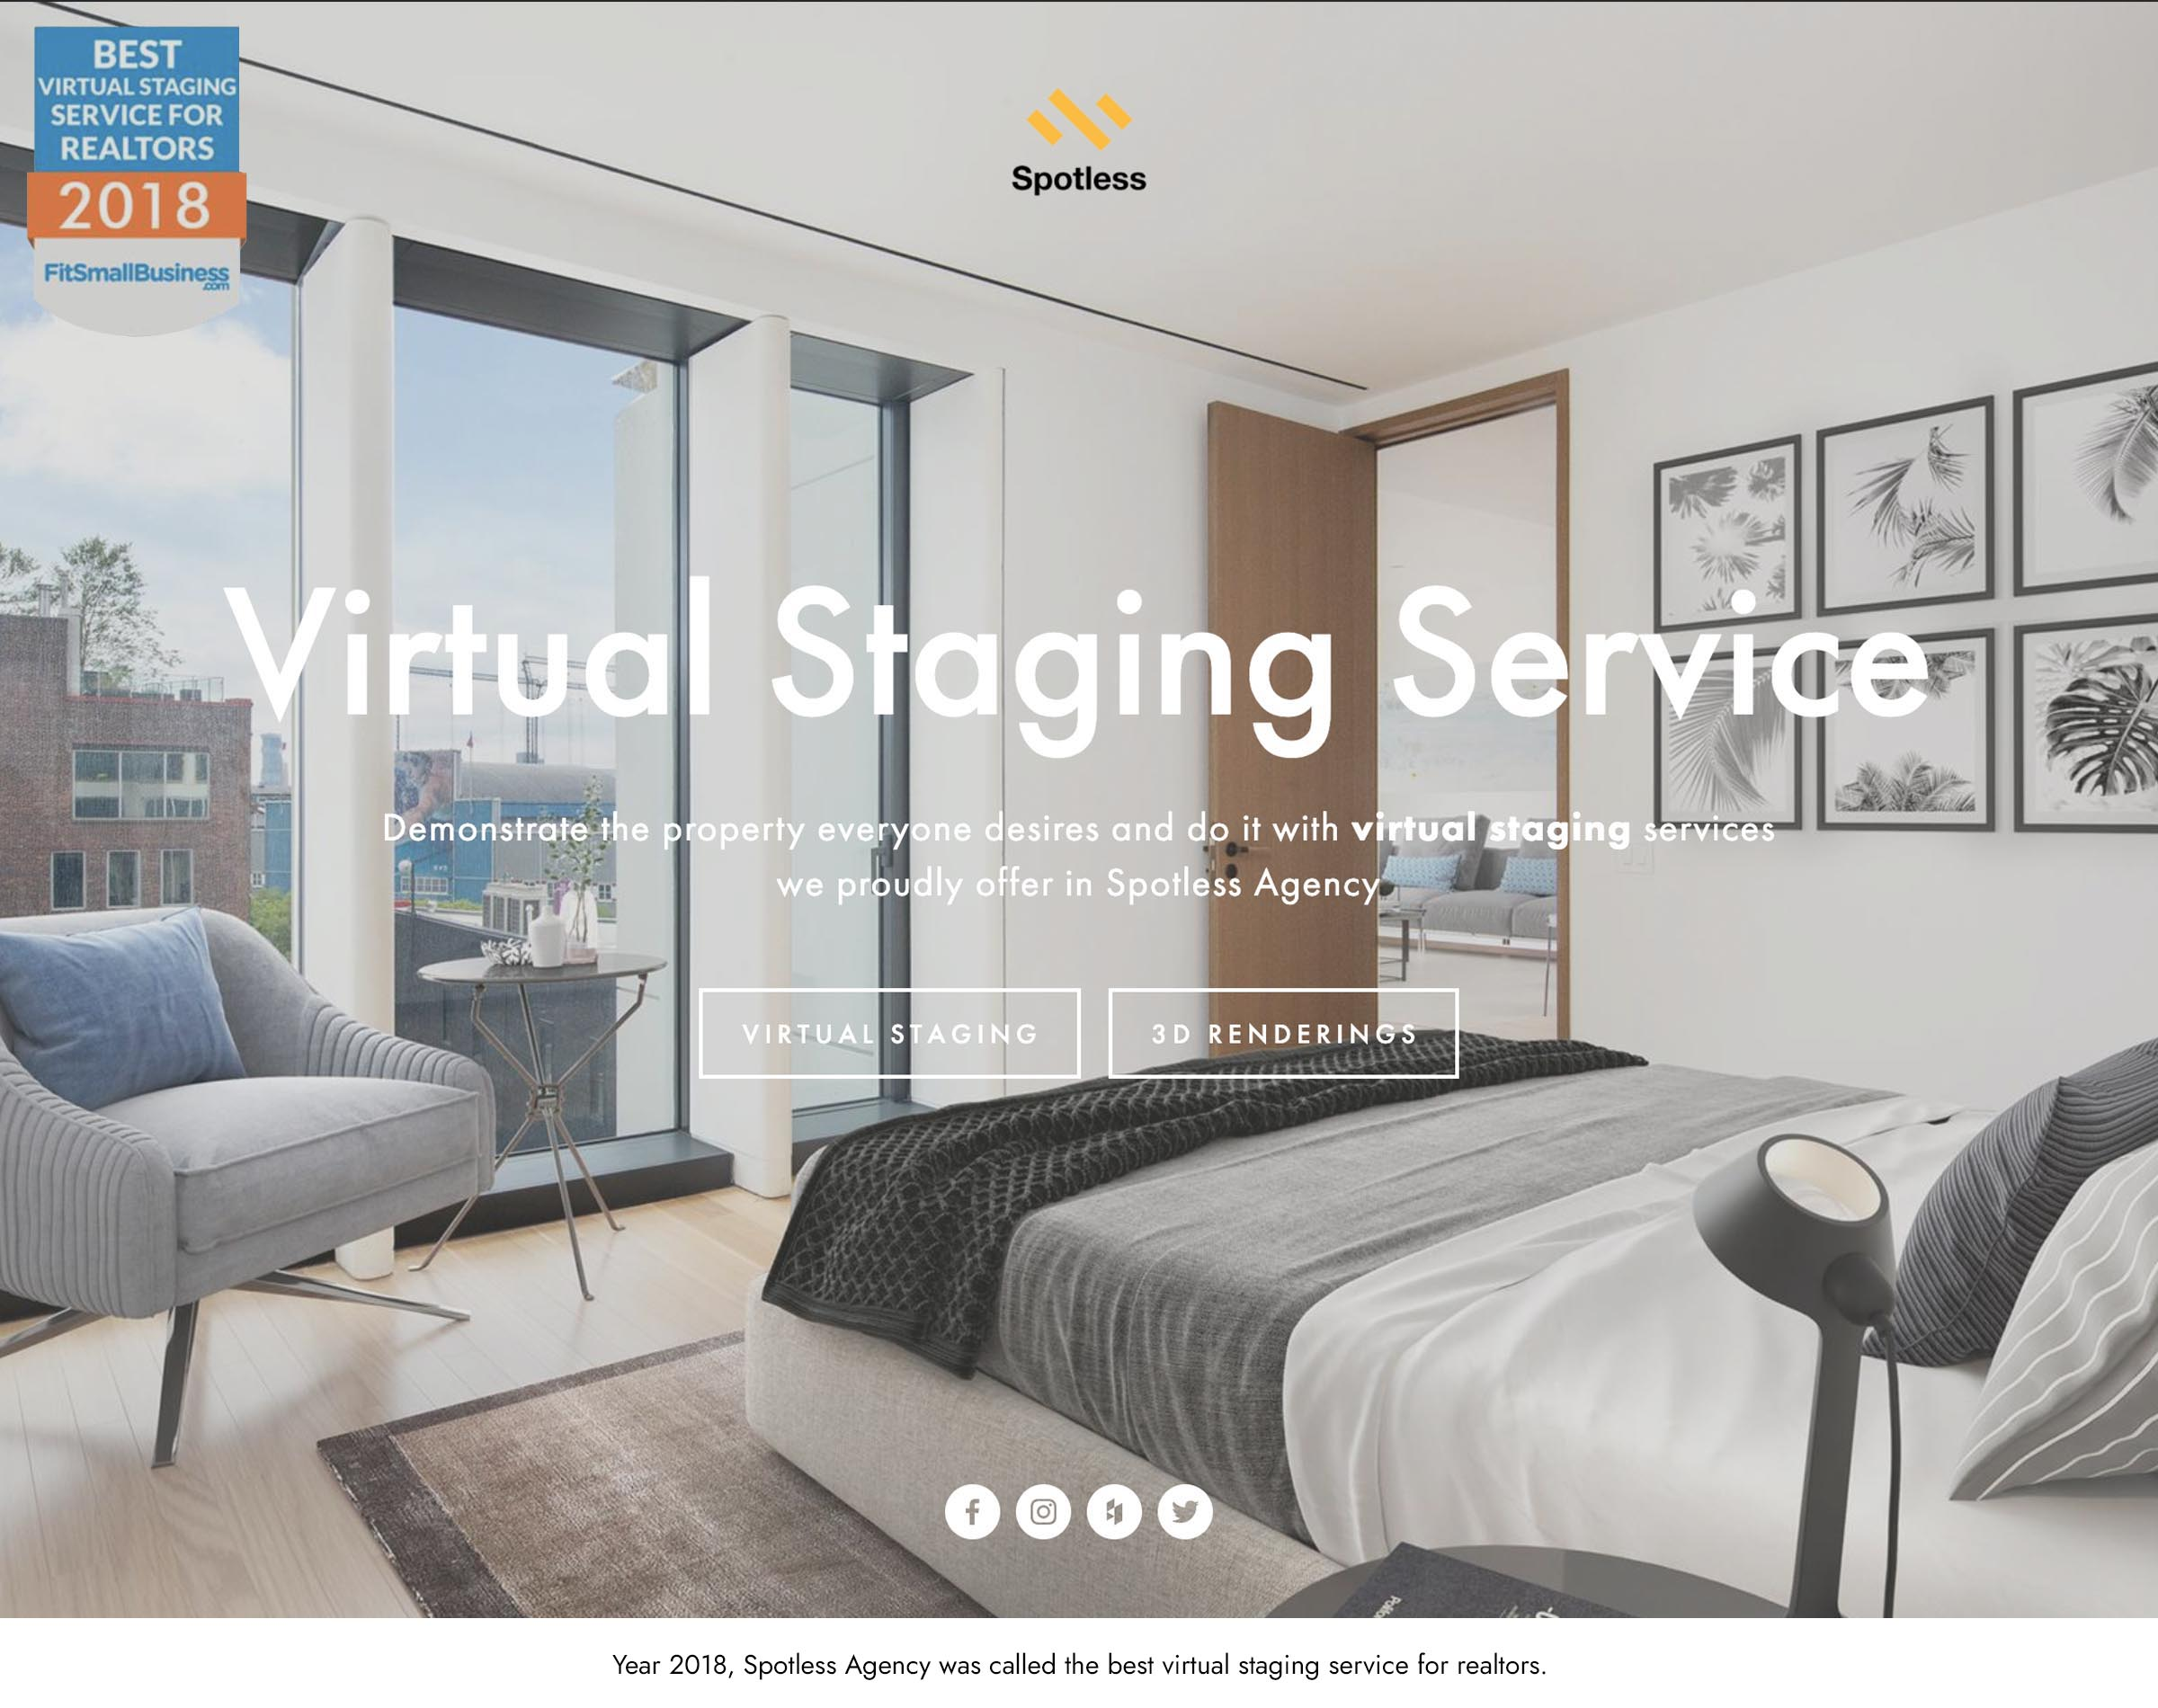 Year 2018, Spotless Agency was called the best virtual staging service for realtors.